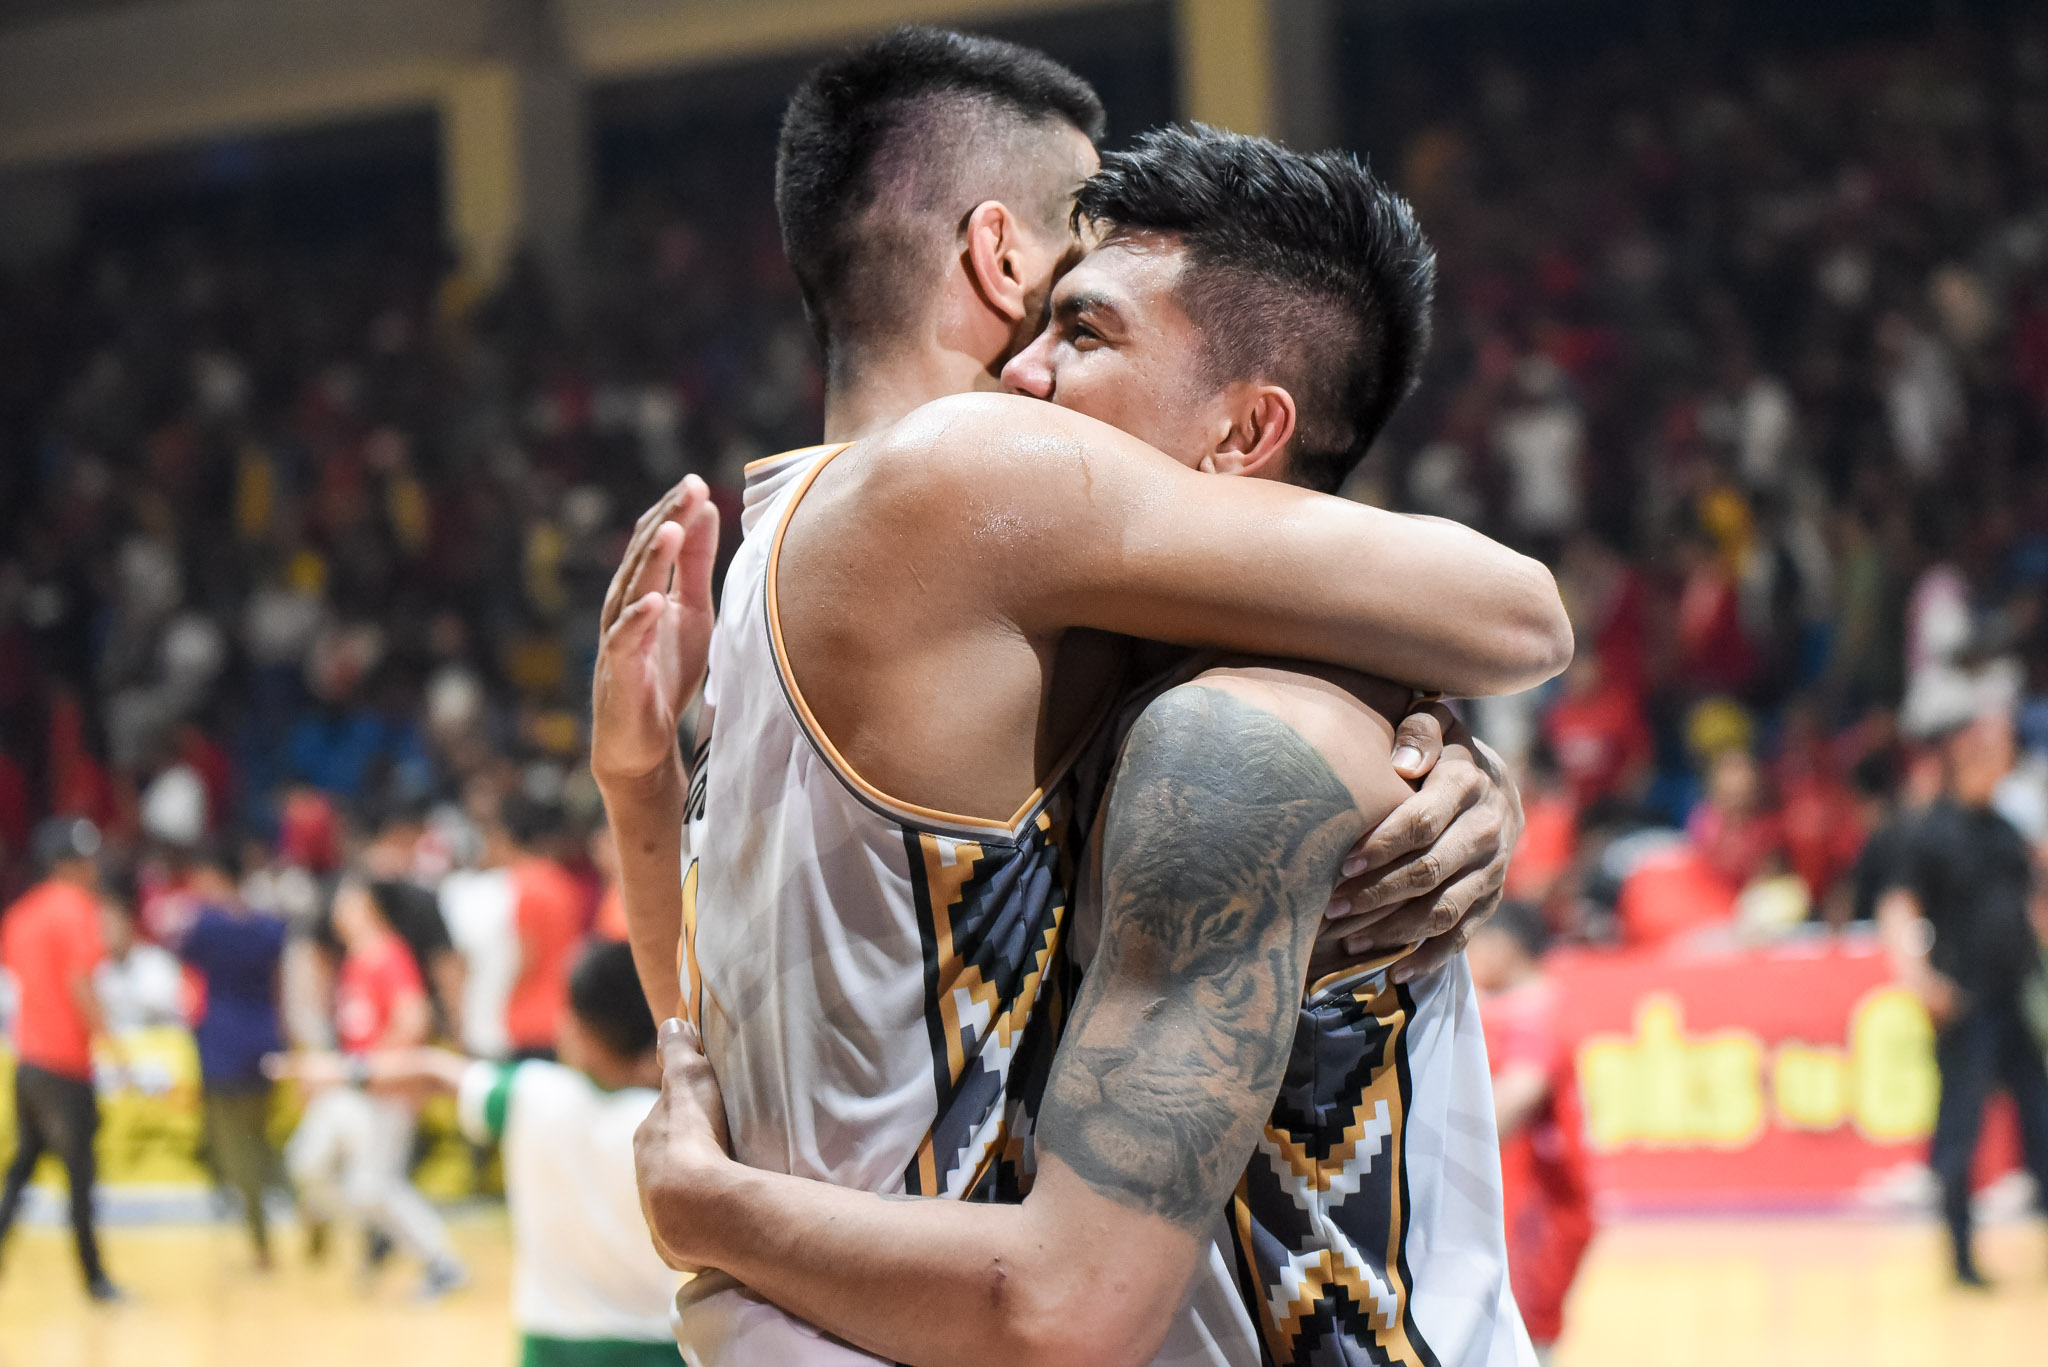 Tiebreaker Times Robles, Custodio take over Basilan, lift Davao Occi to MPBL South do-or-die News  Richard Albo Kenneth Mocon Jessie Collado Jerson Cabiltes Emman Calo Don Dulay Davao Occidental Tigers Bonbon Custodio Basilan Steel 2019-20 MPBL Lakan Cup